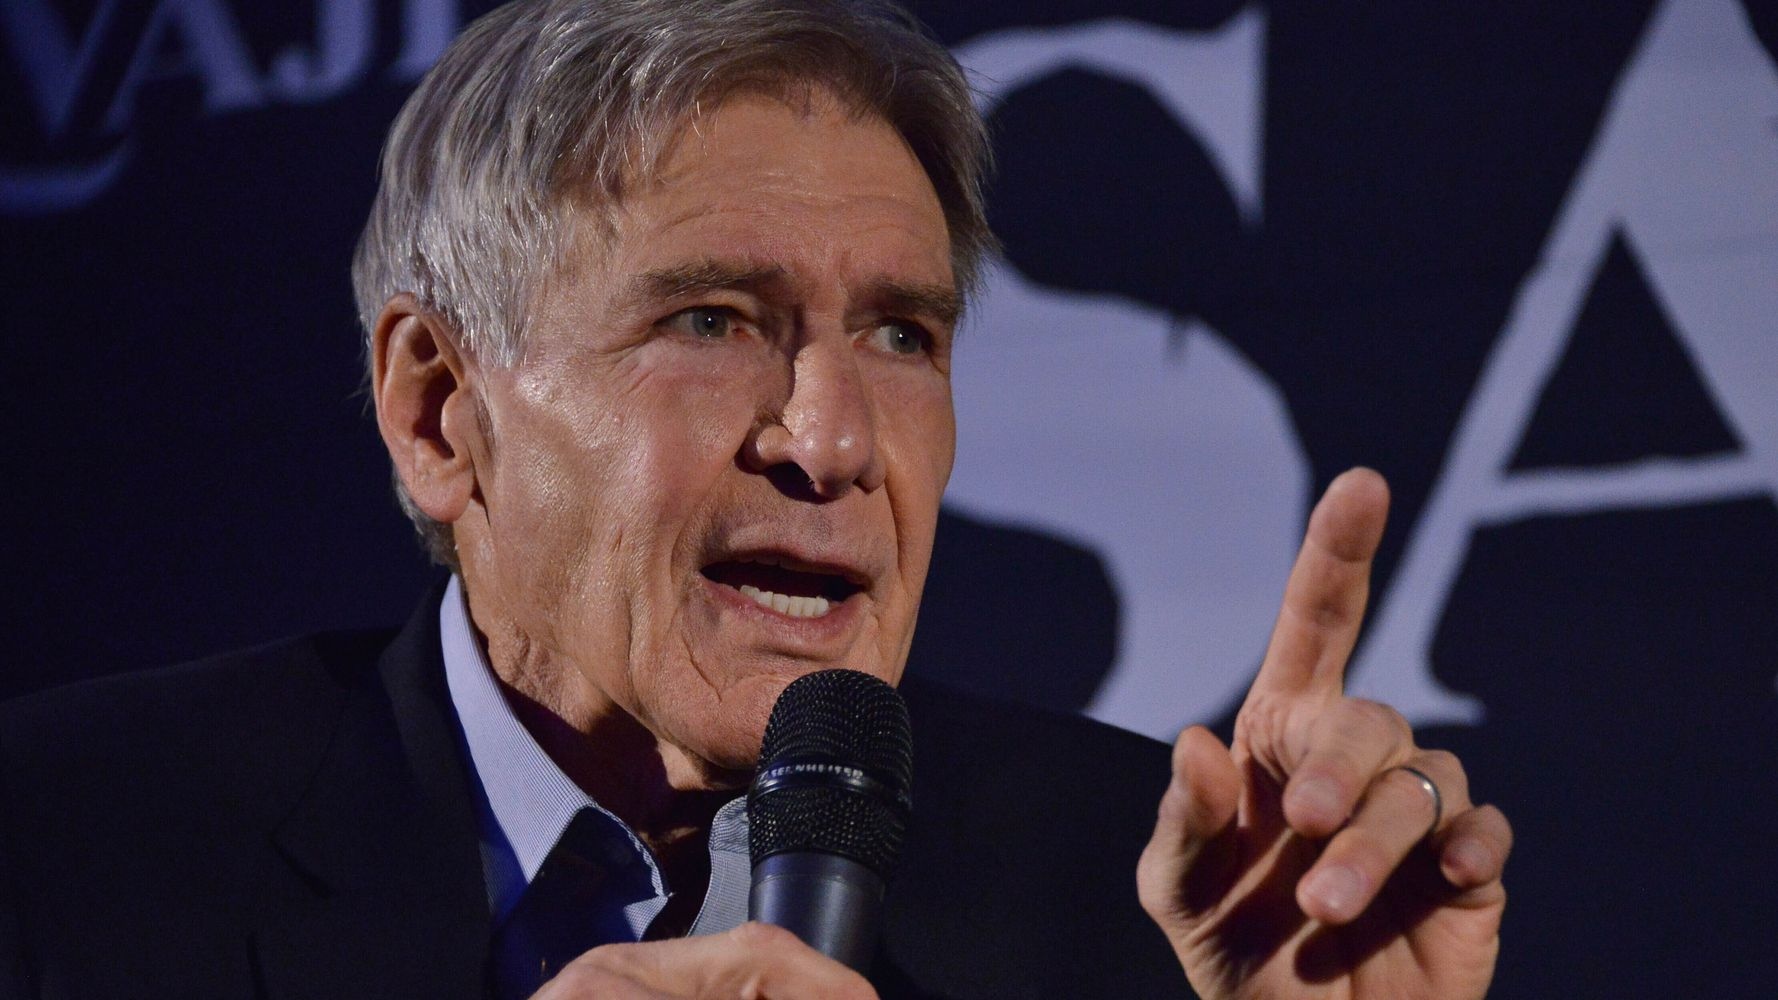 Harrison Ford: America Has Lost Its Moral Leadership And Credibility